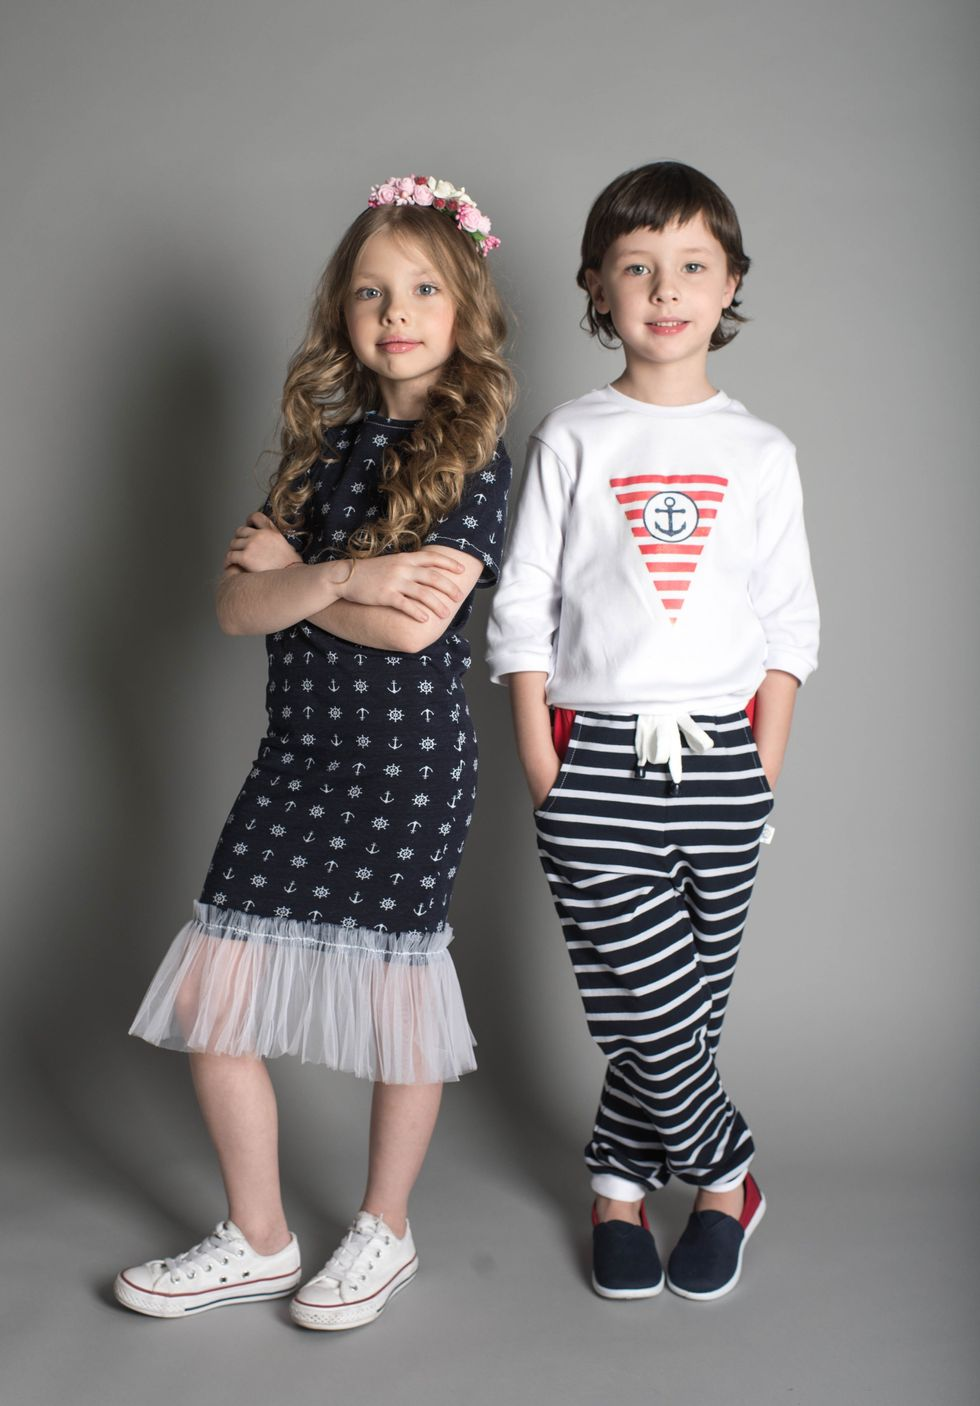 6 Majorly Disturbing Qualities Of Fashion For Little Girls That Somehow Still Exist In 2019